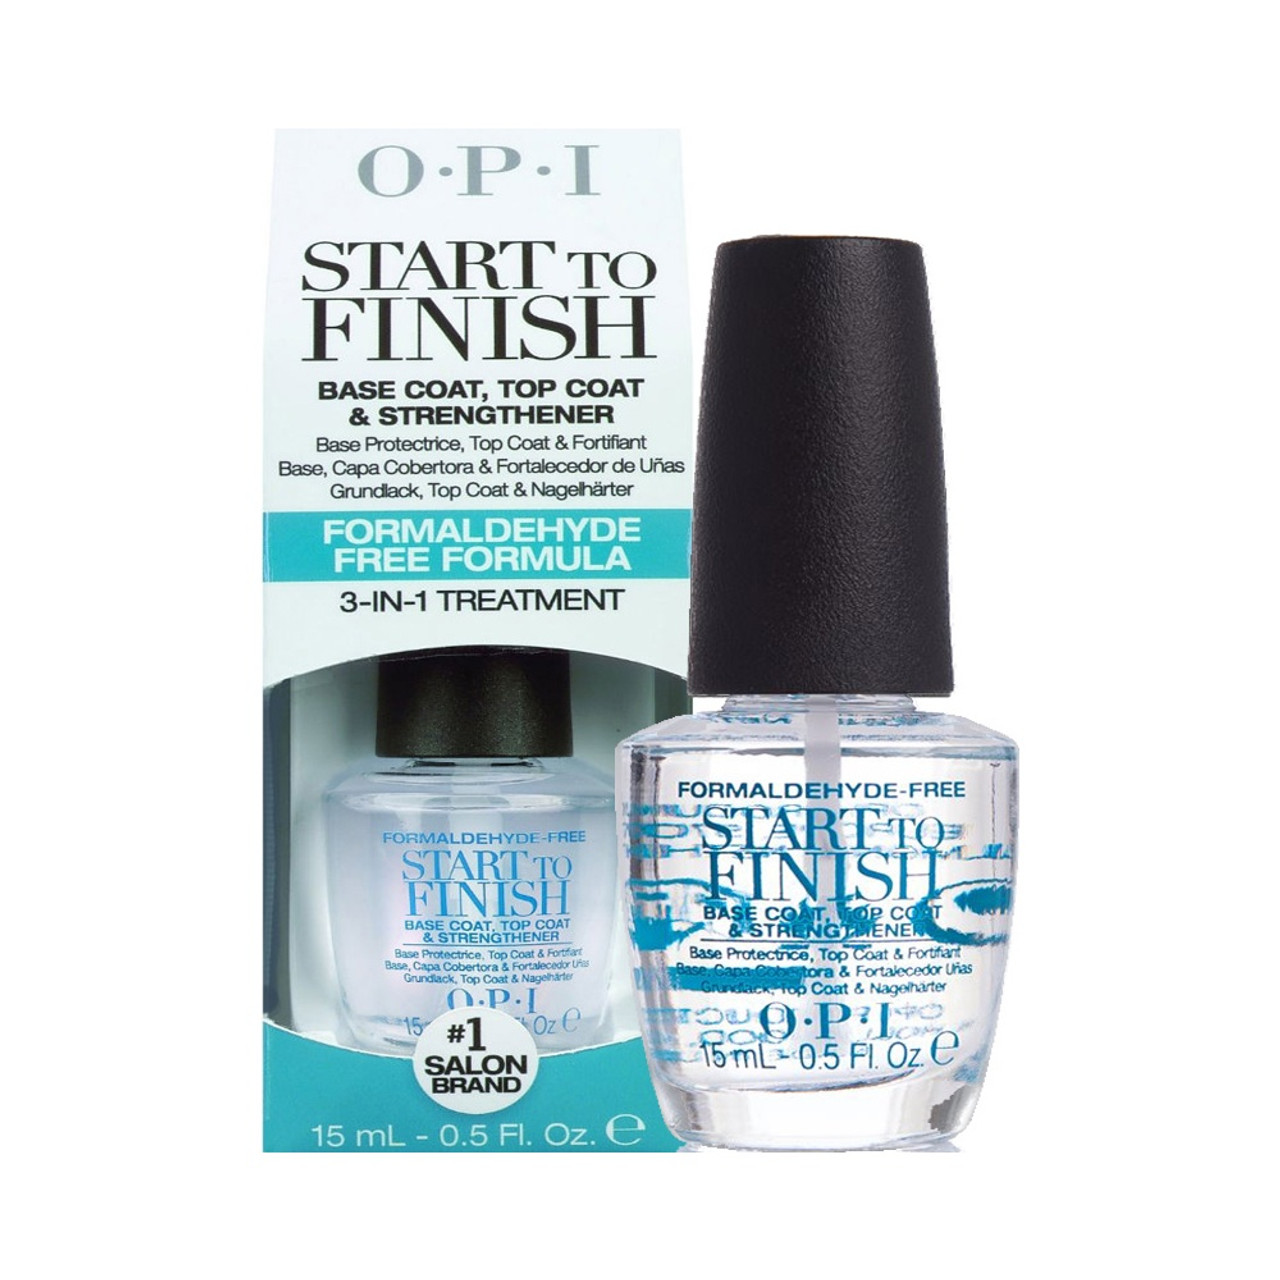 opi start to finish formaldehyde free review